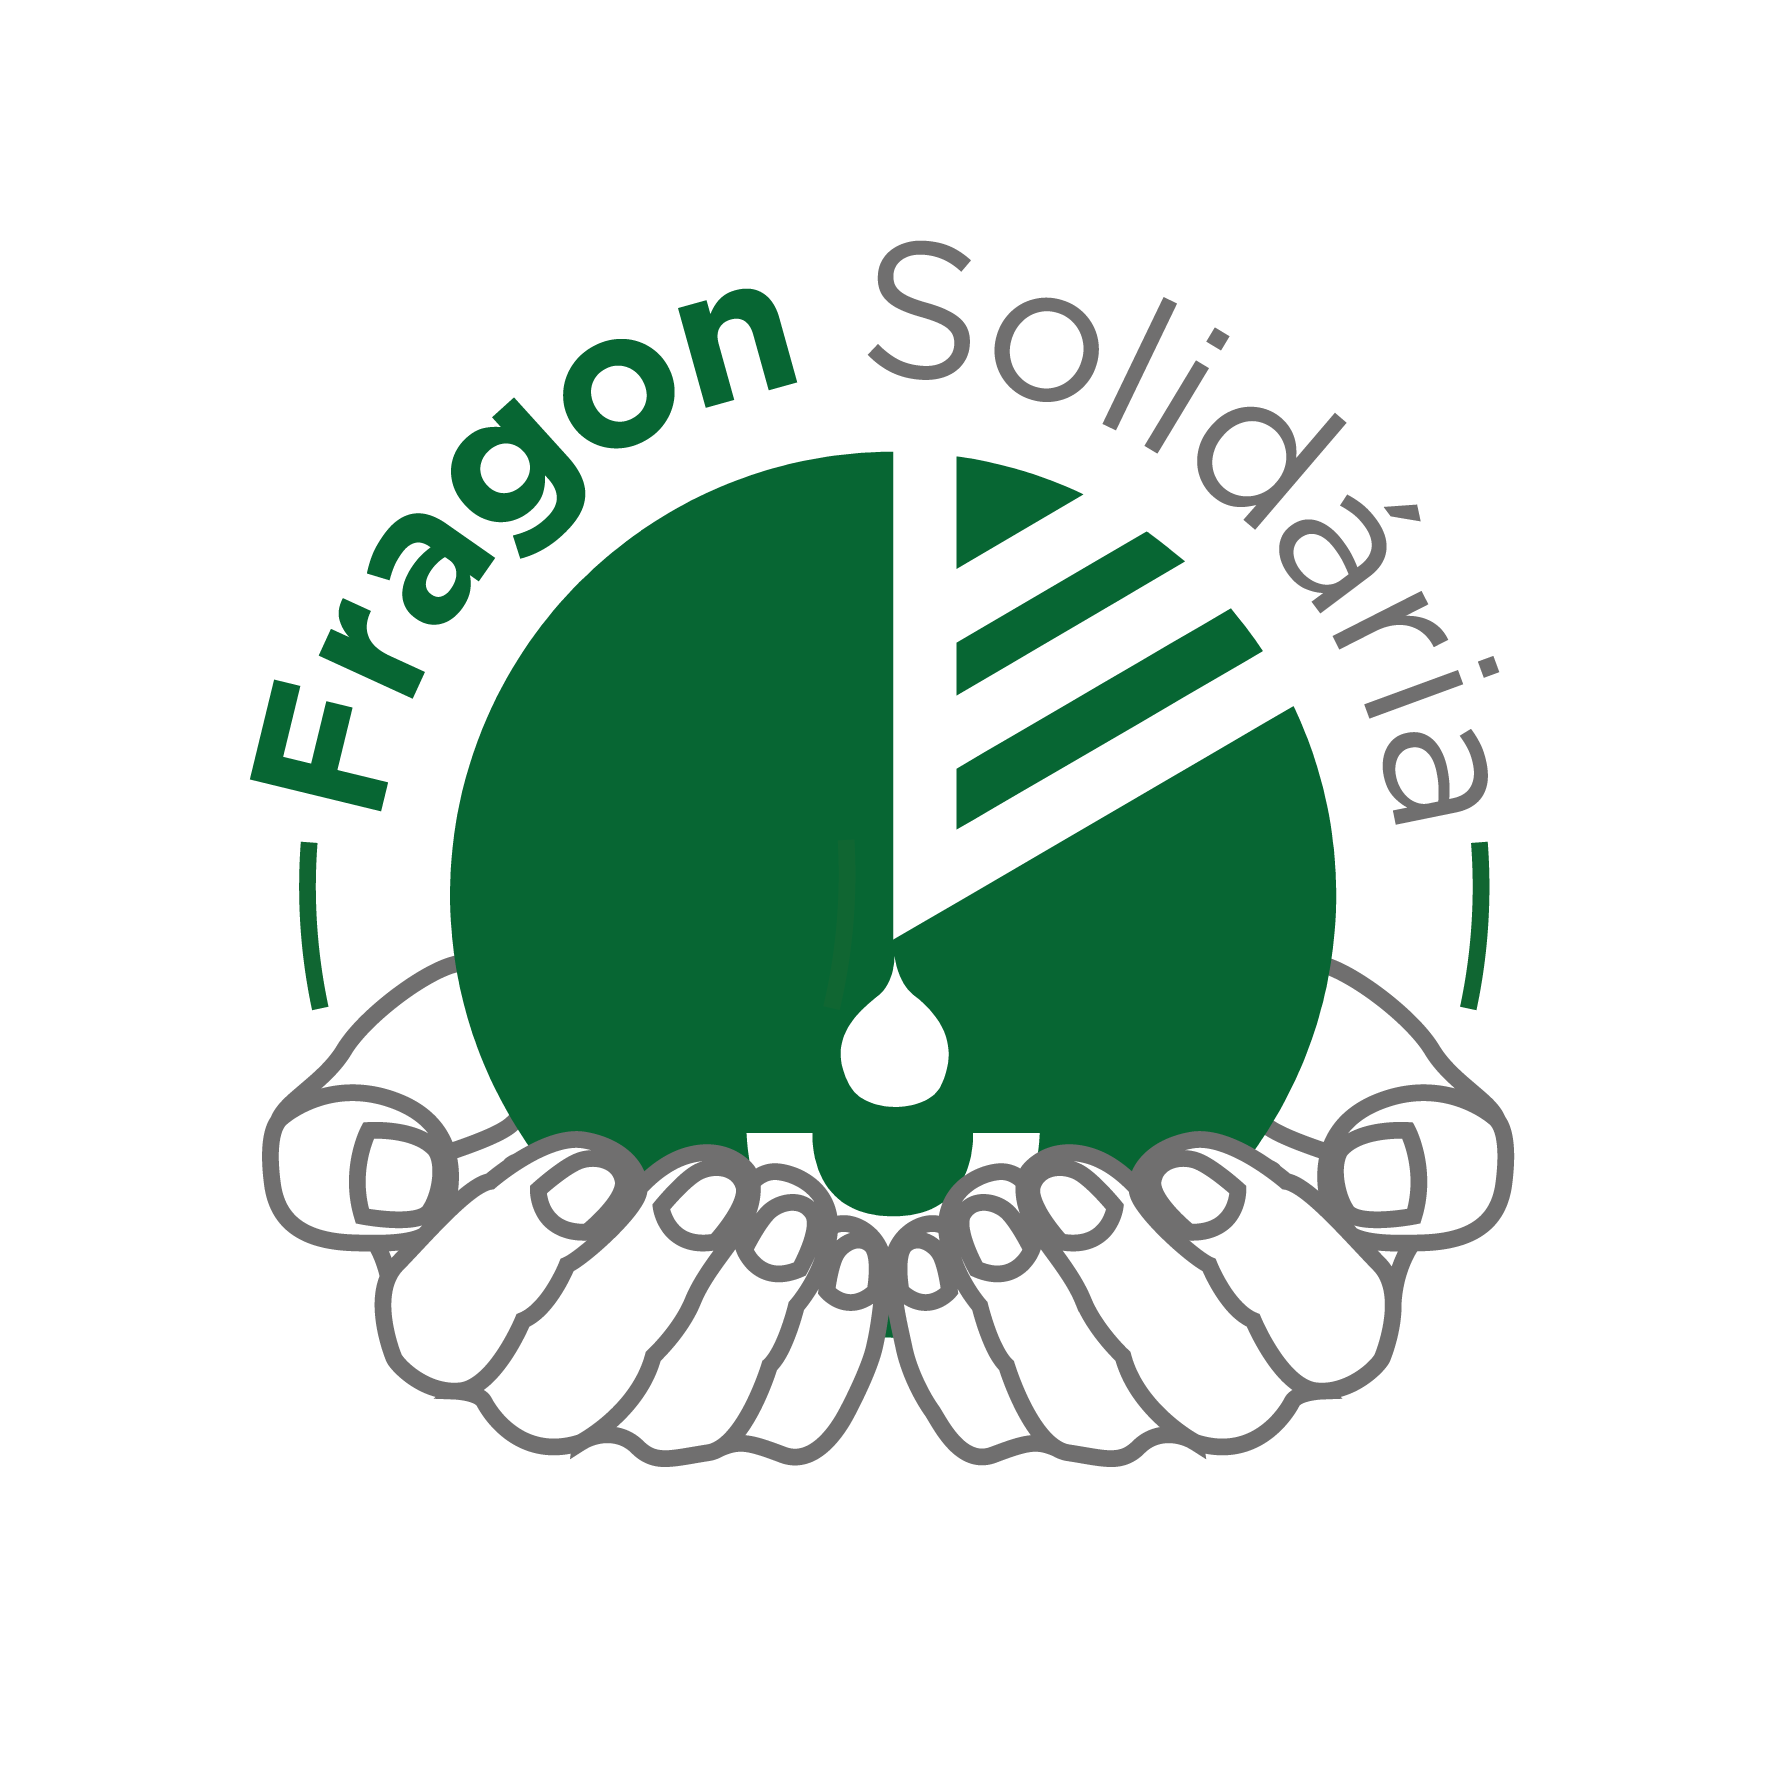 Fragon Solidária